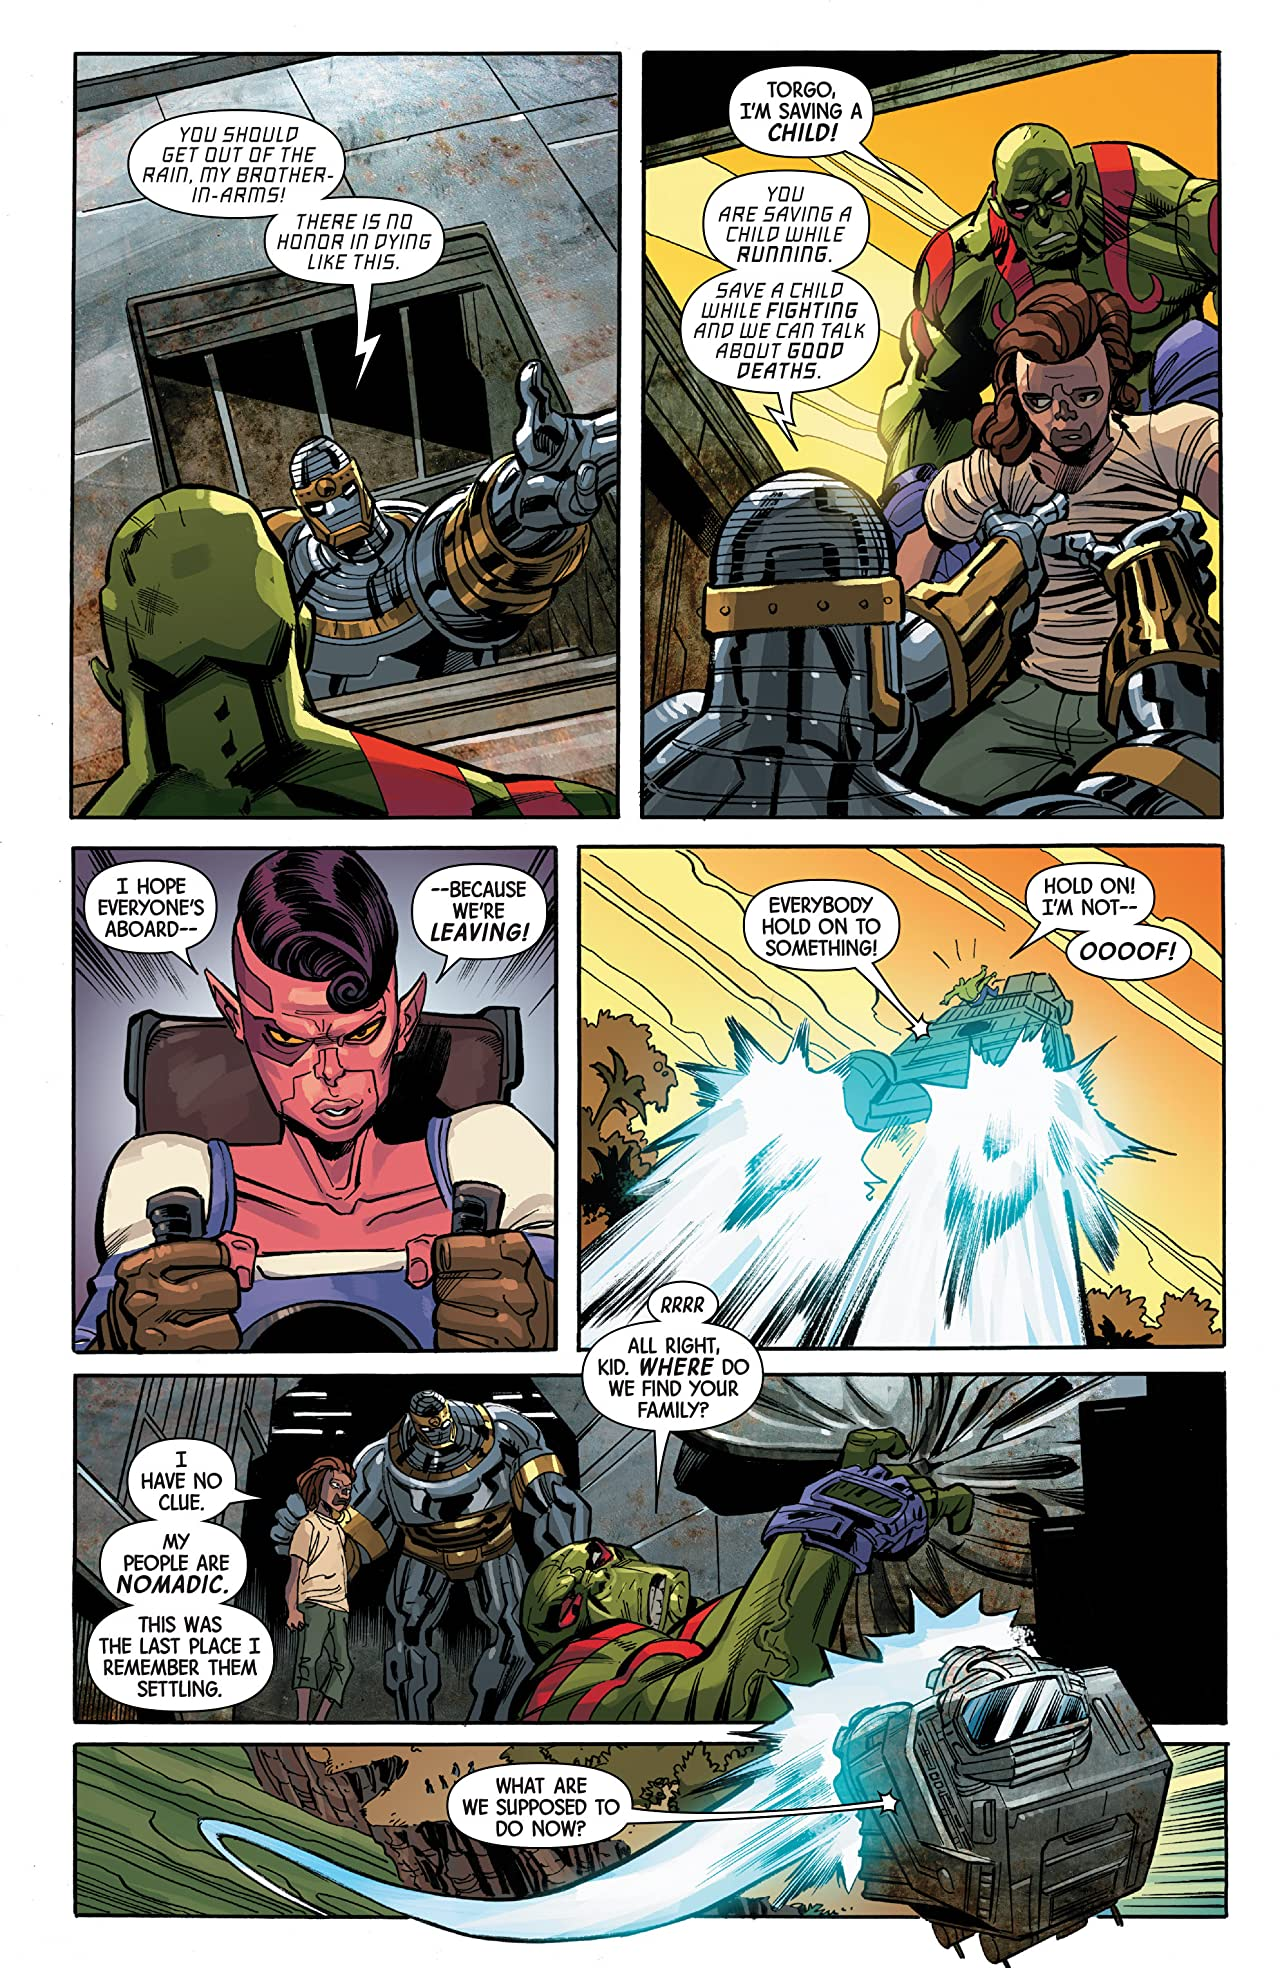 Drax Vol. 2: The Children's Crusade